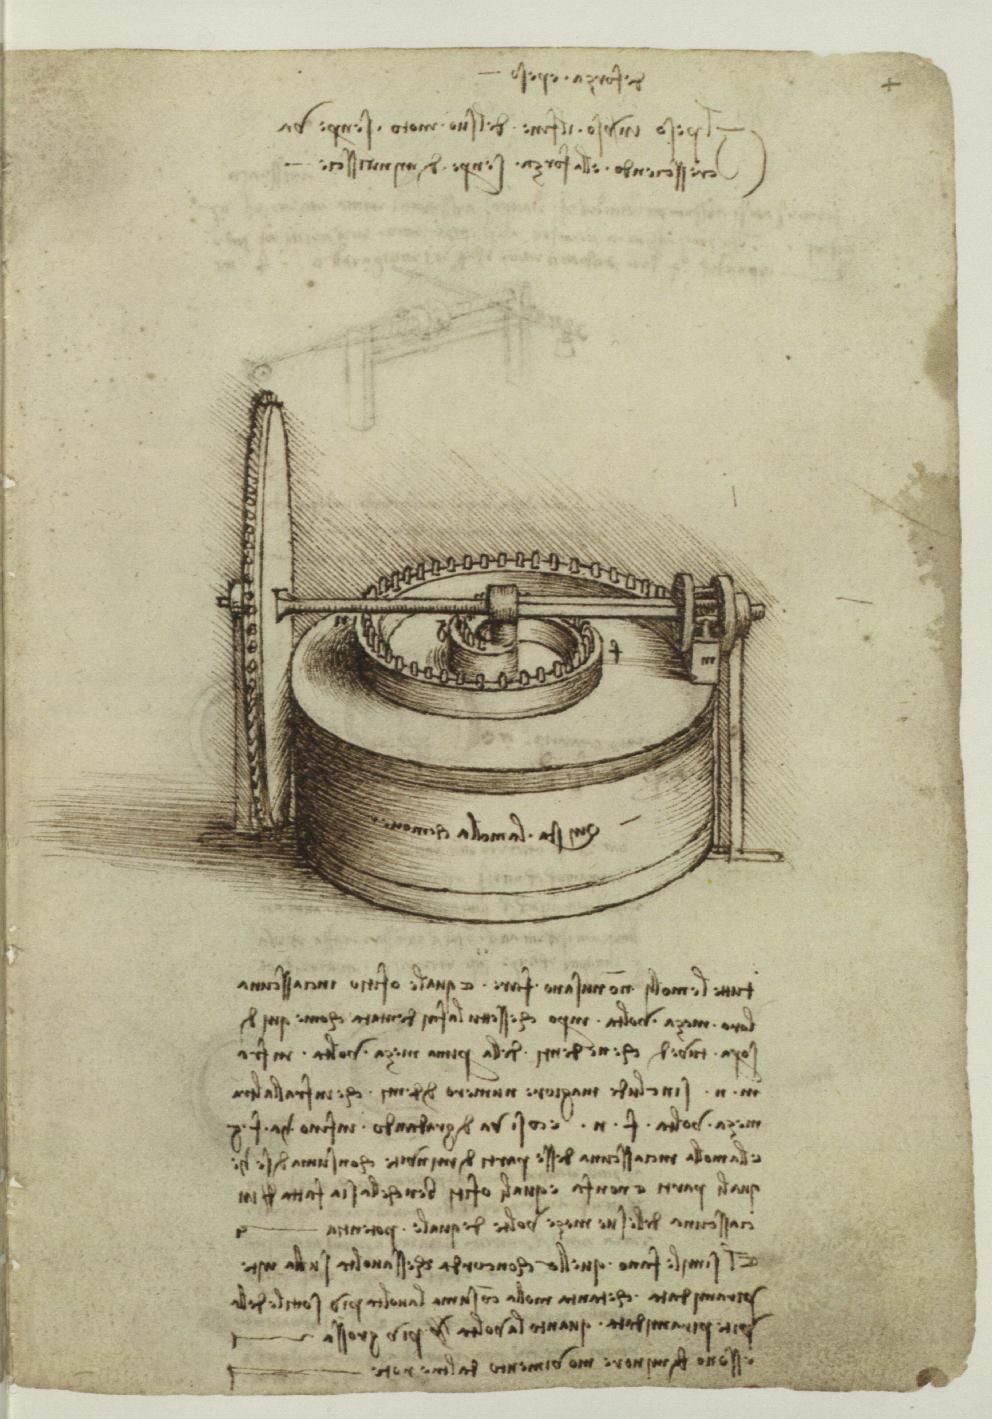 an introduction to the life of leonardo da vinci Where there any persons or events in his early life which you believe helped shape this  more about leonardo da vinci: an introduction leonardo da vinci essay.